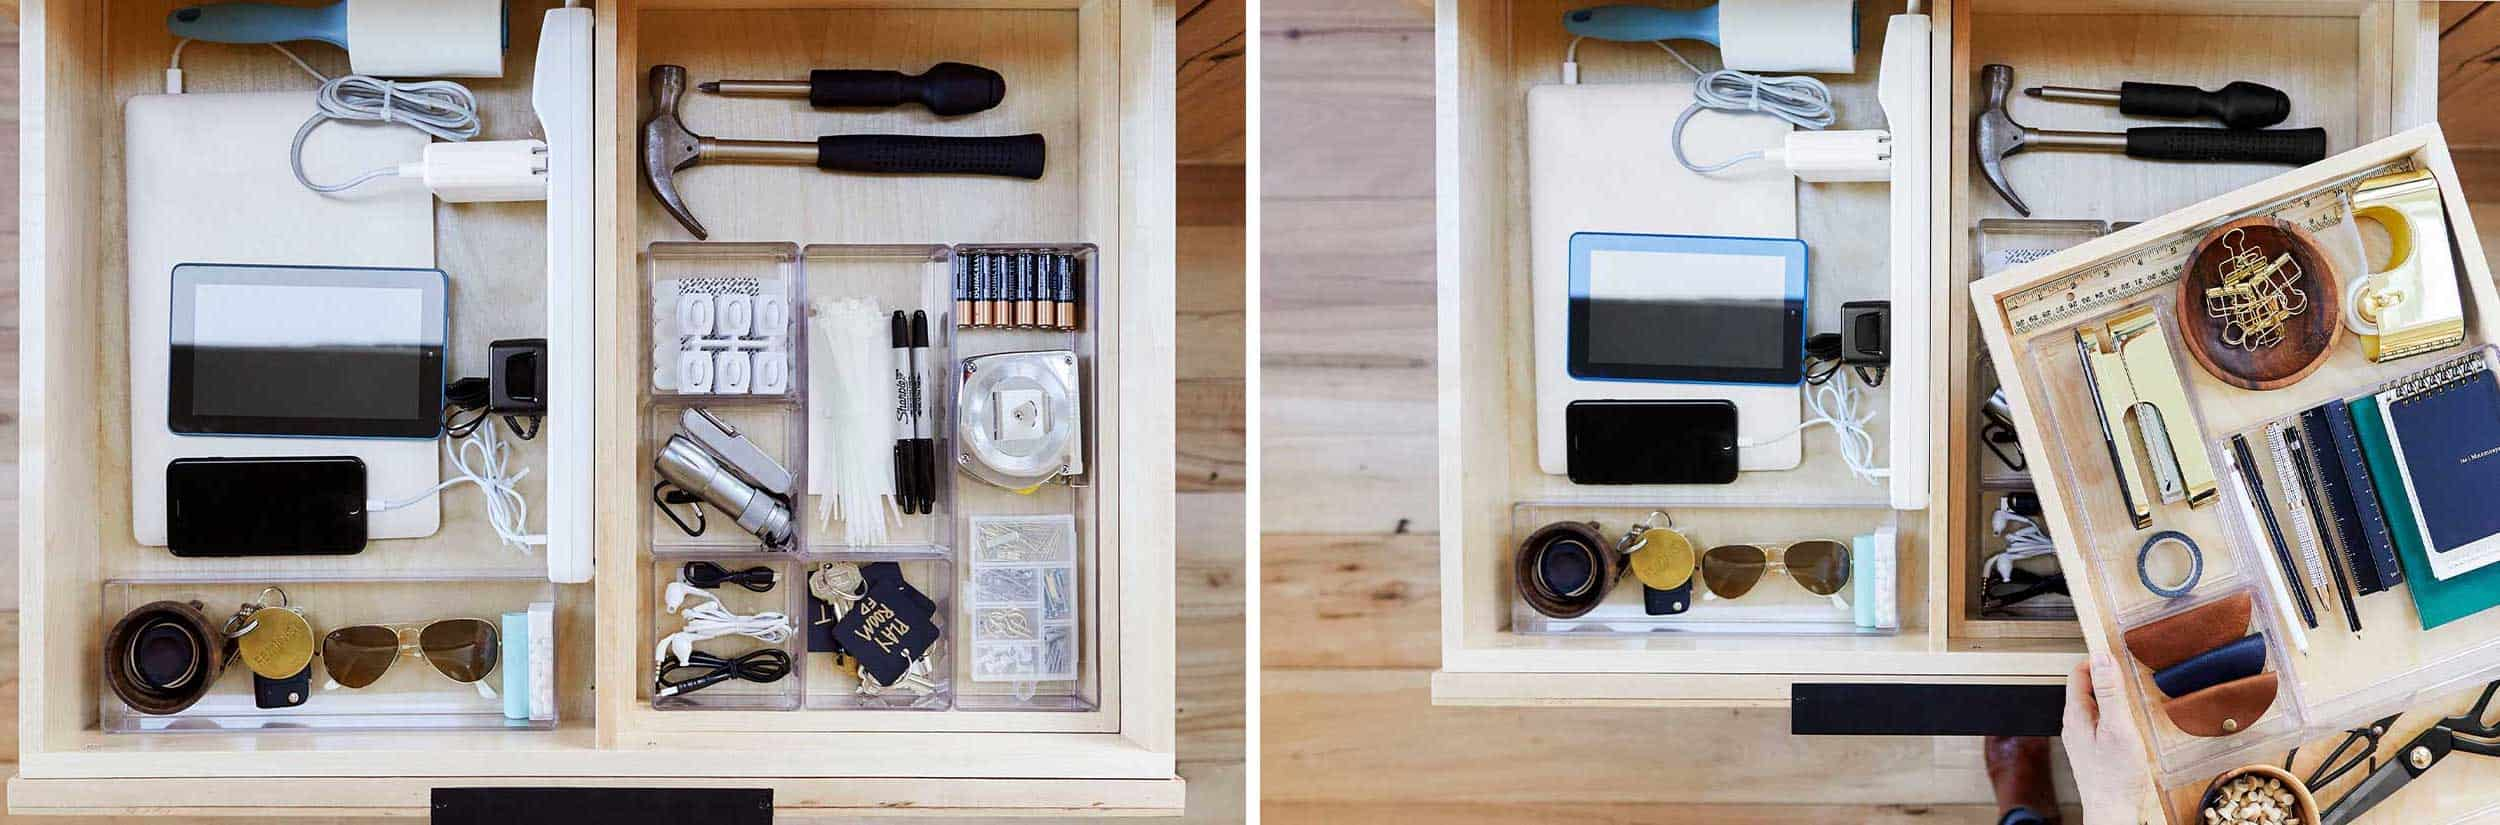 Emily Henderson kitchen organization hacks11